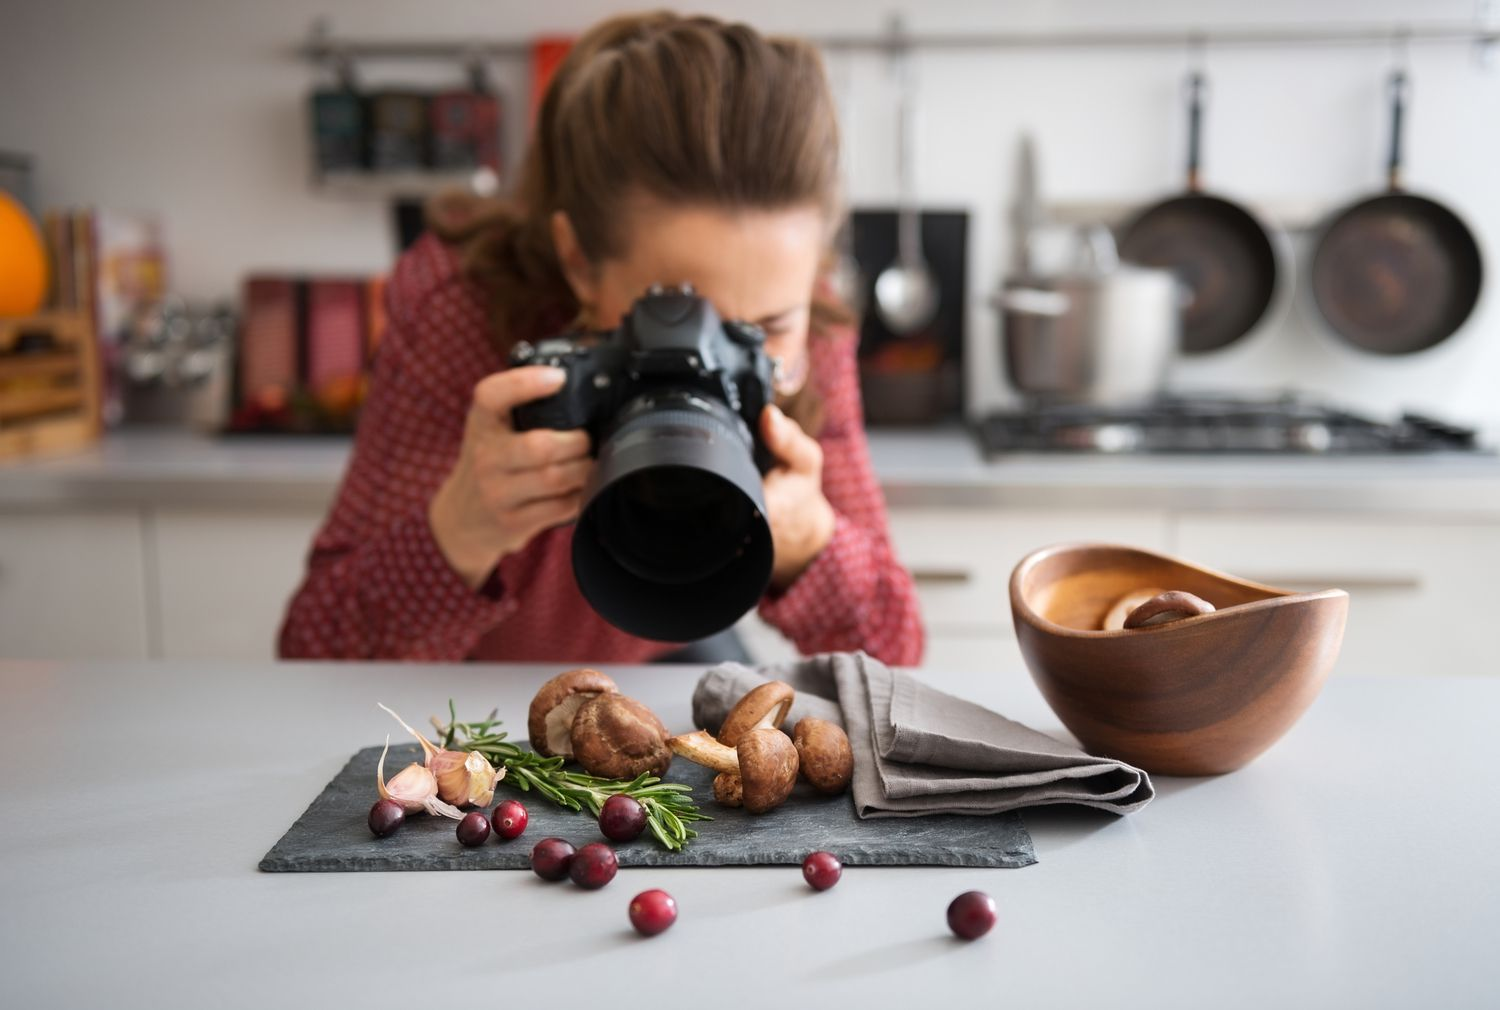 It may seem easy because vegetables aren't moving around, but taking good food photos is really hard.